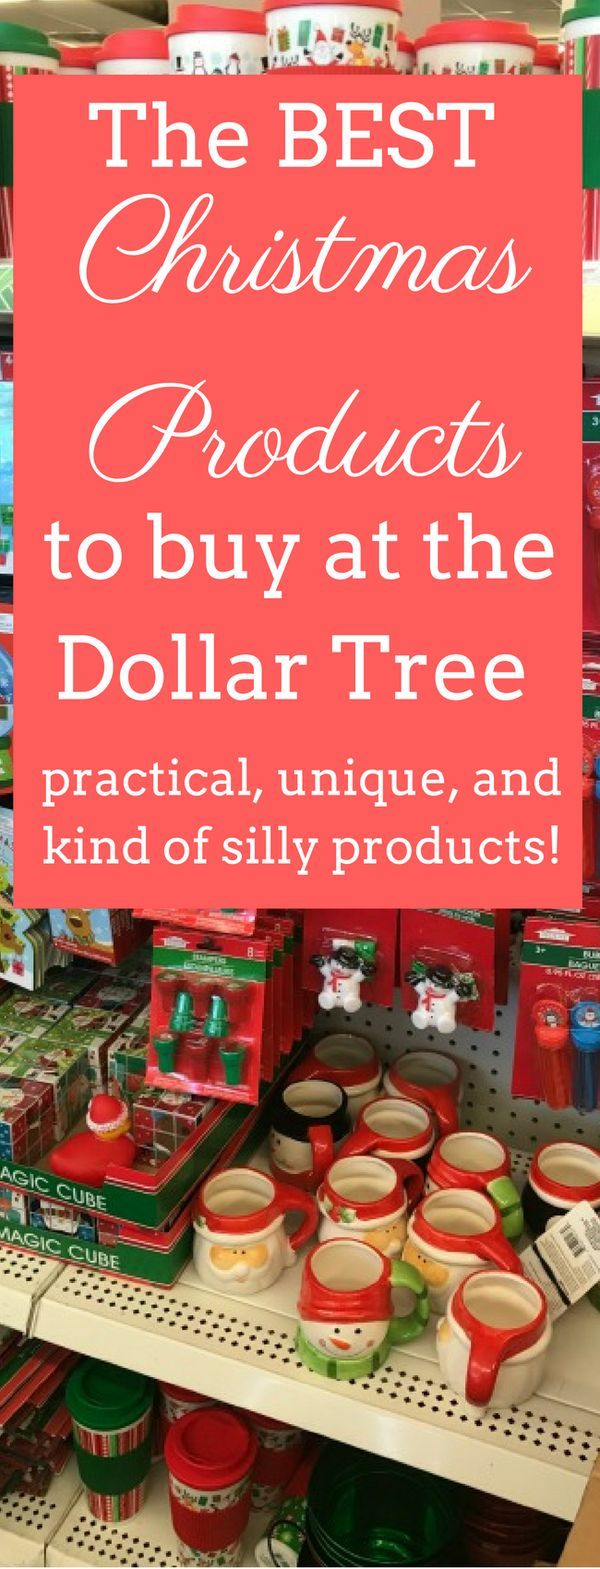 The best Christmas finds at the Dollar Tree!